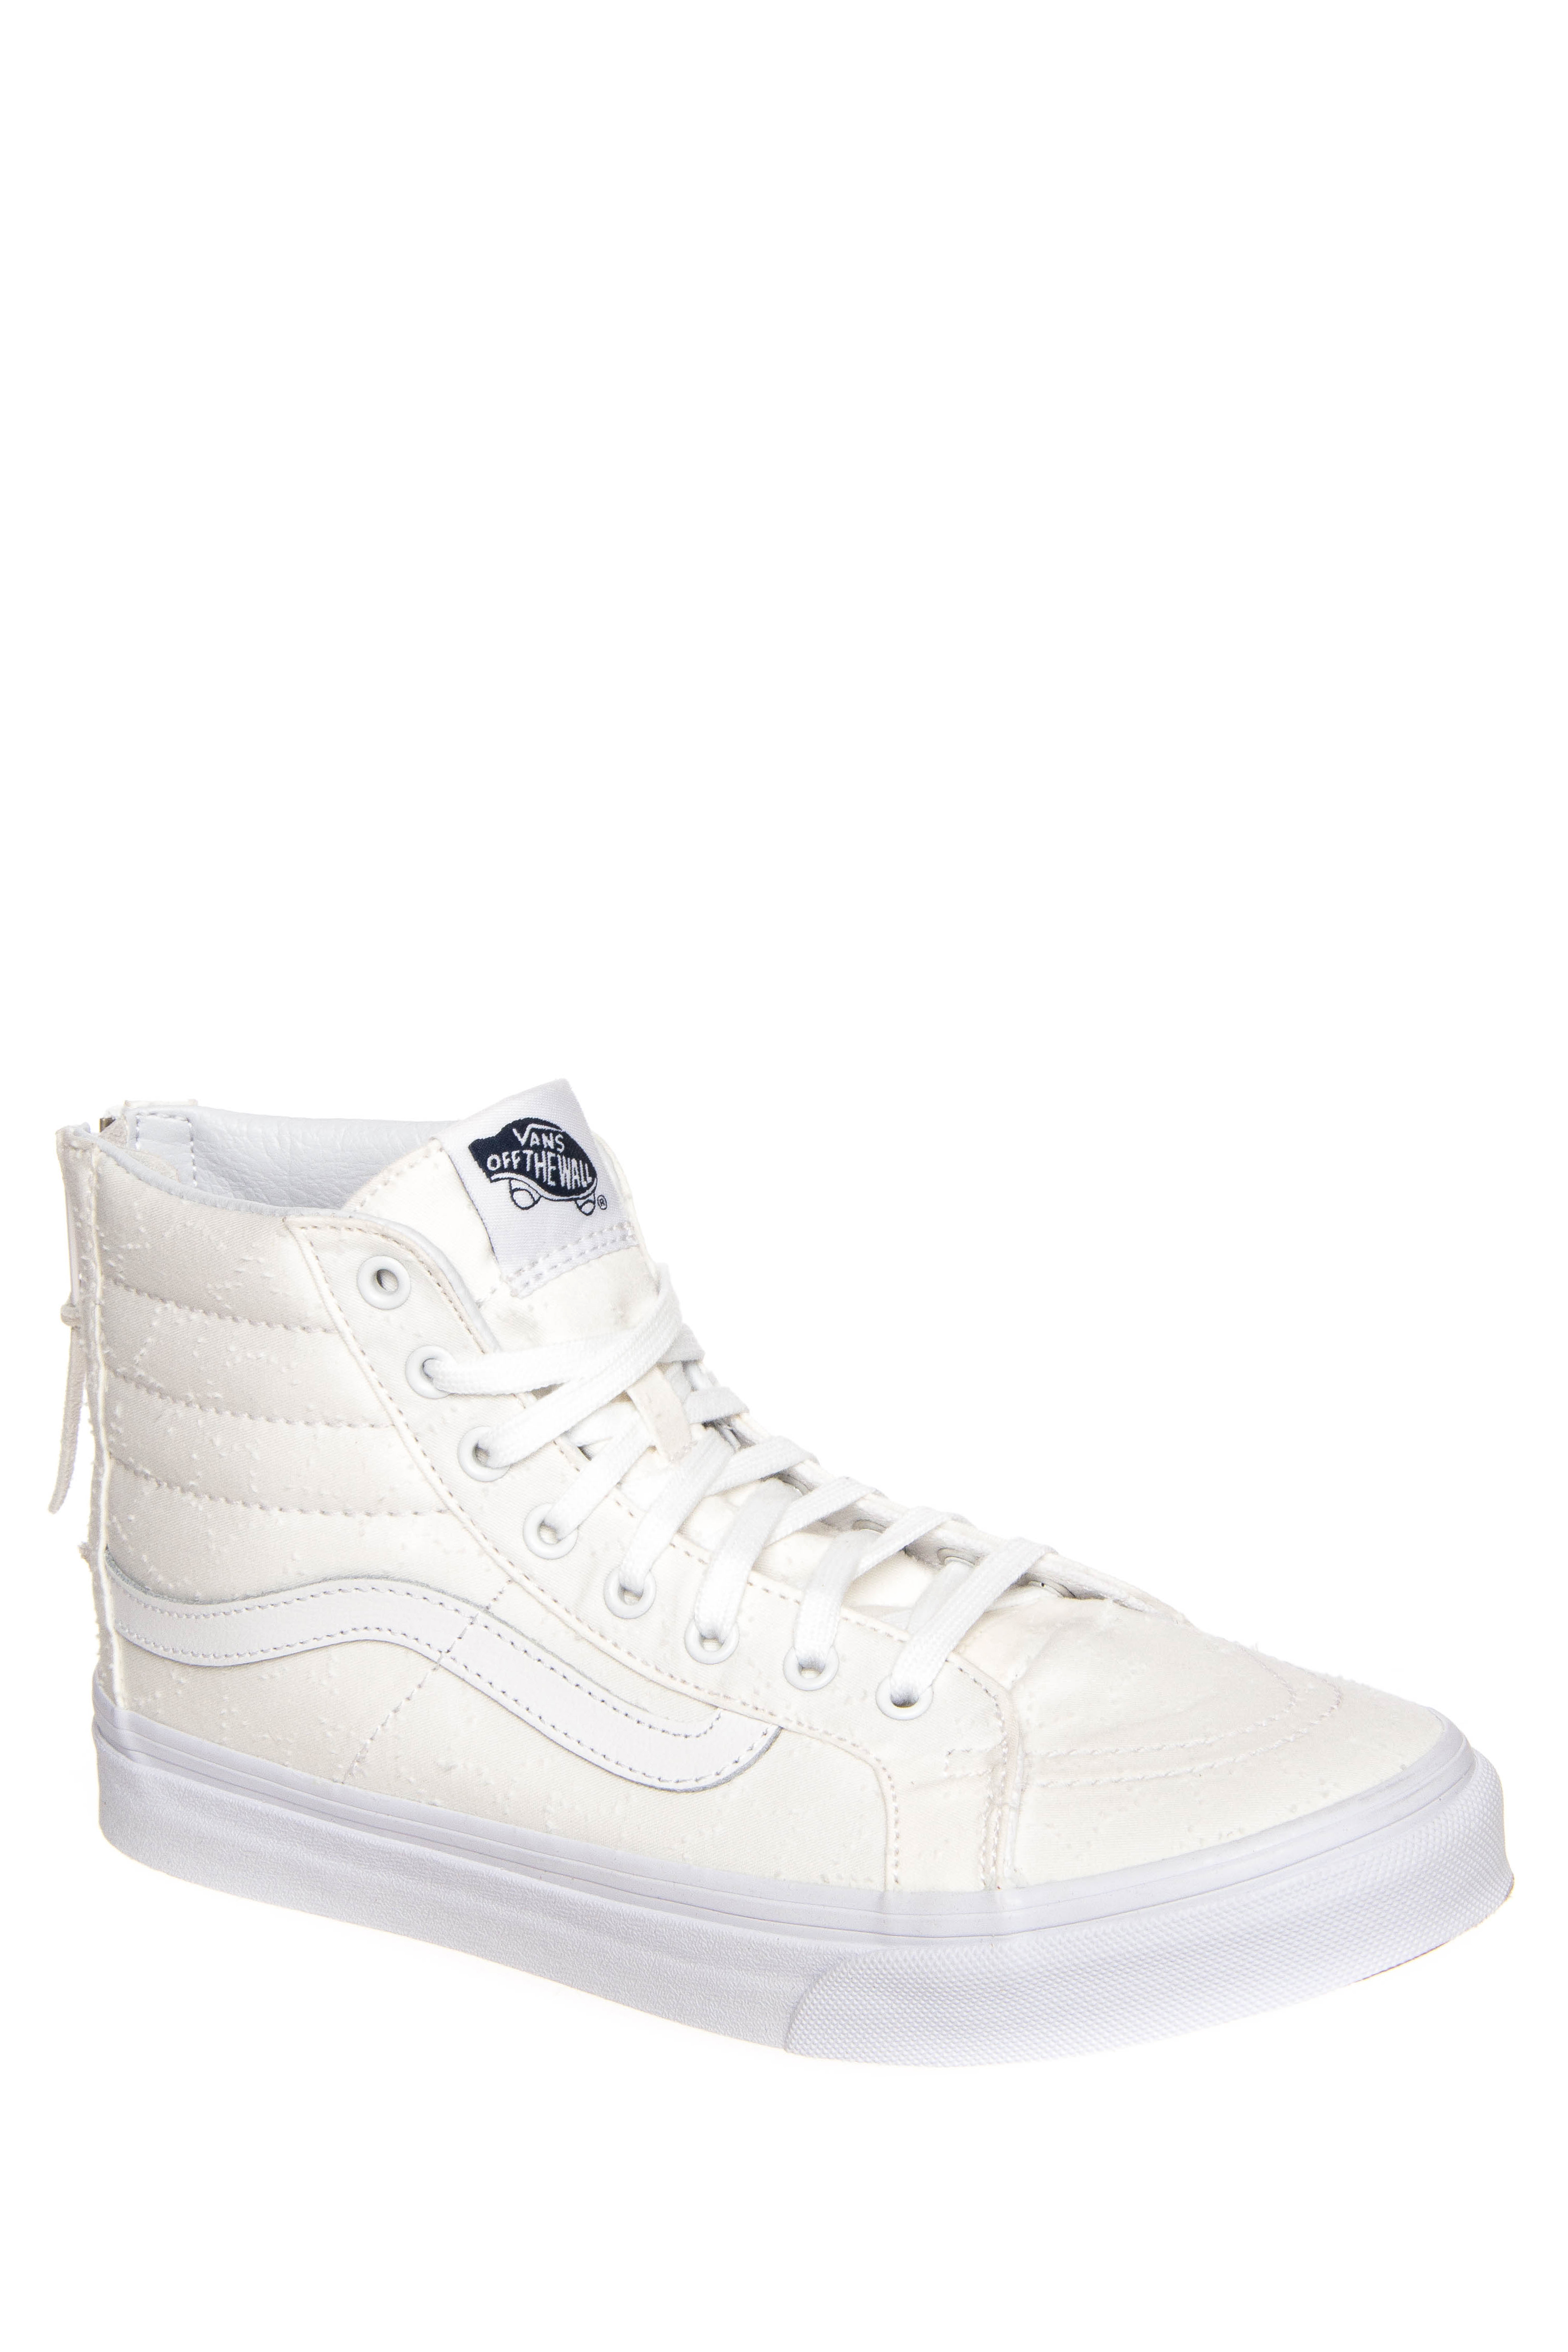 Vans Star Dots Sk8-Hi Slim Zip High Top Sneakers - True White